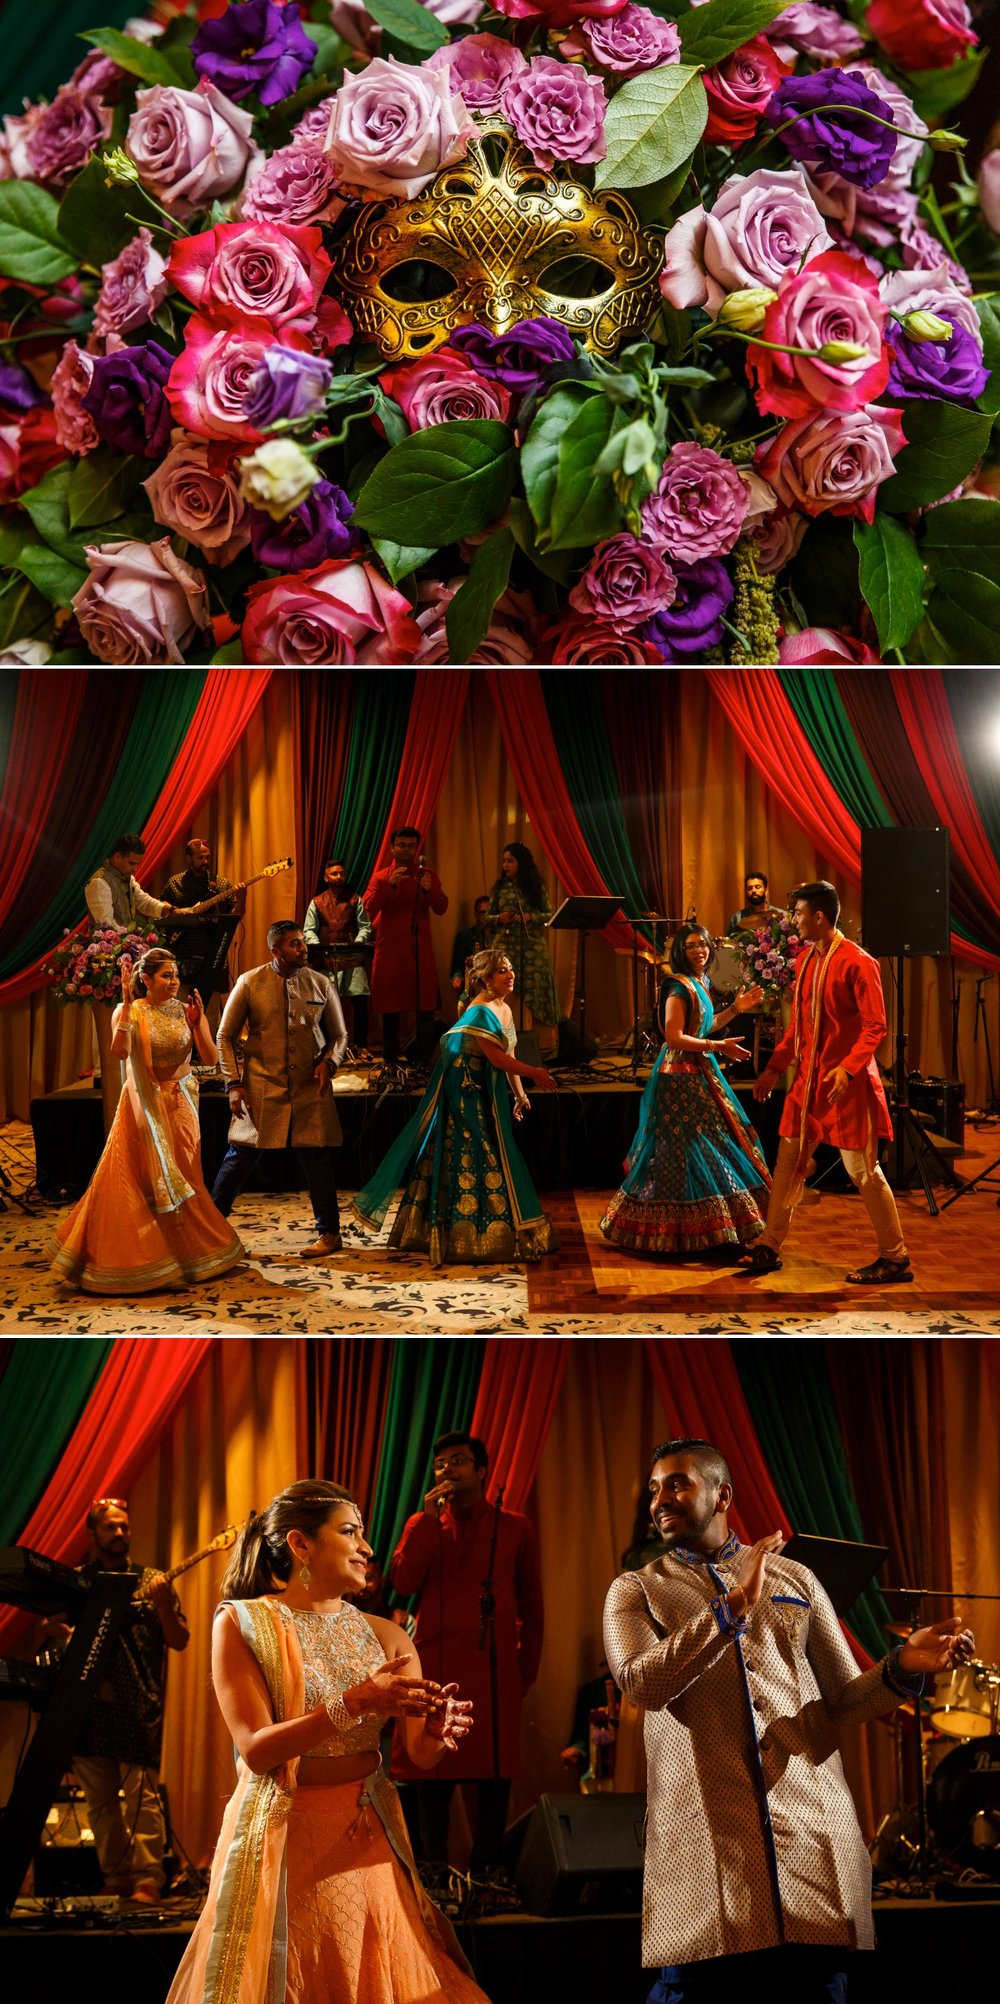 photos from a sangeet or musical party at an indian wedding in ottawa